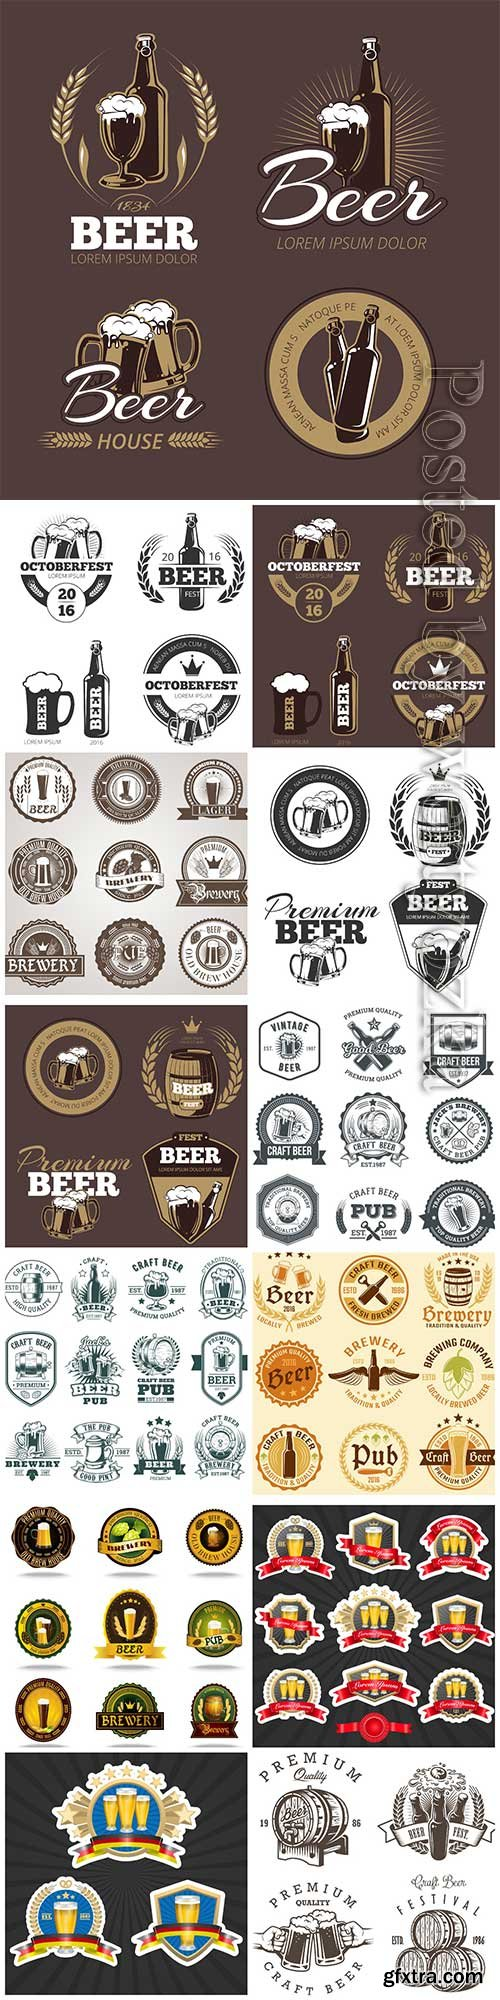 Beer label templates for beer house, brewing company, pub and bar